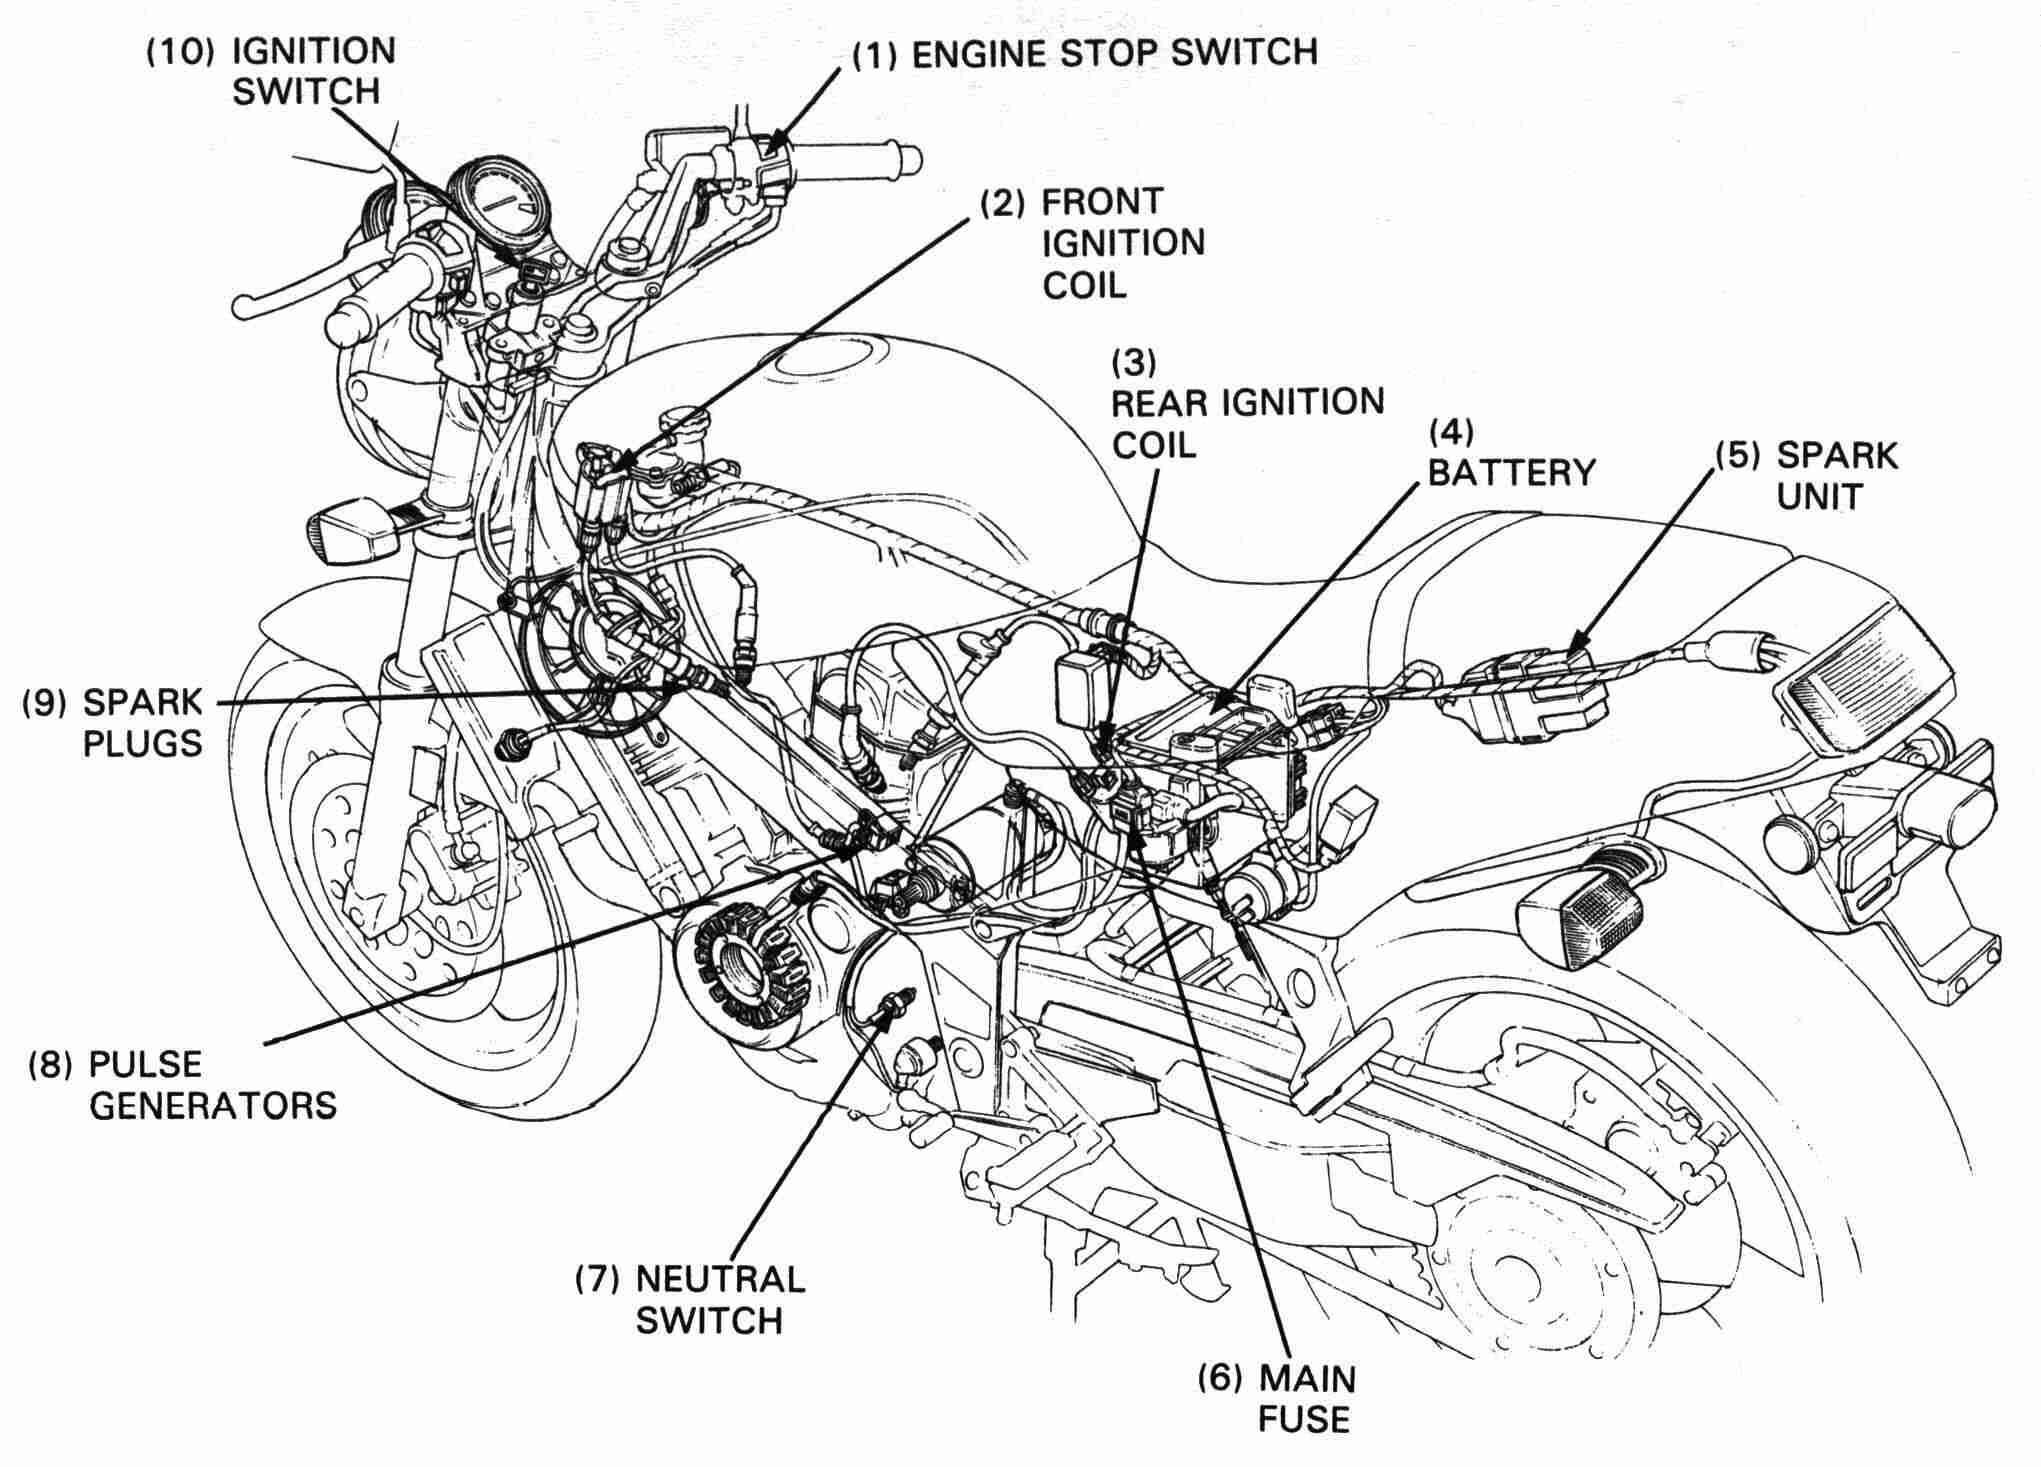 Honda NT650 service manual, section 16, Ignition system on